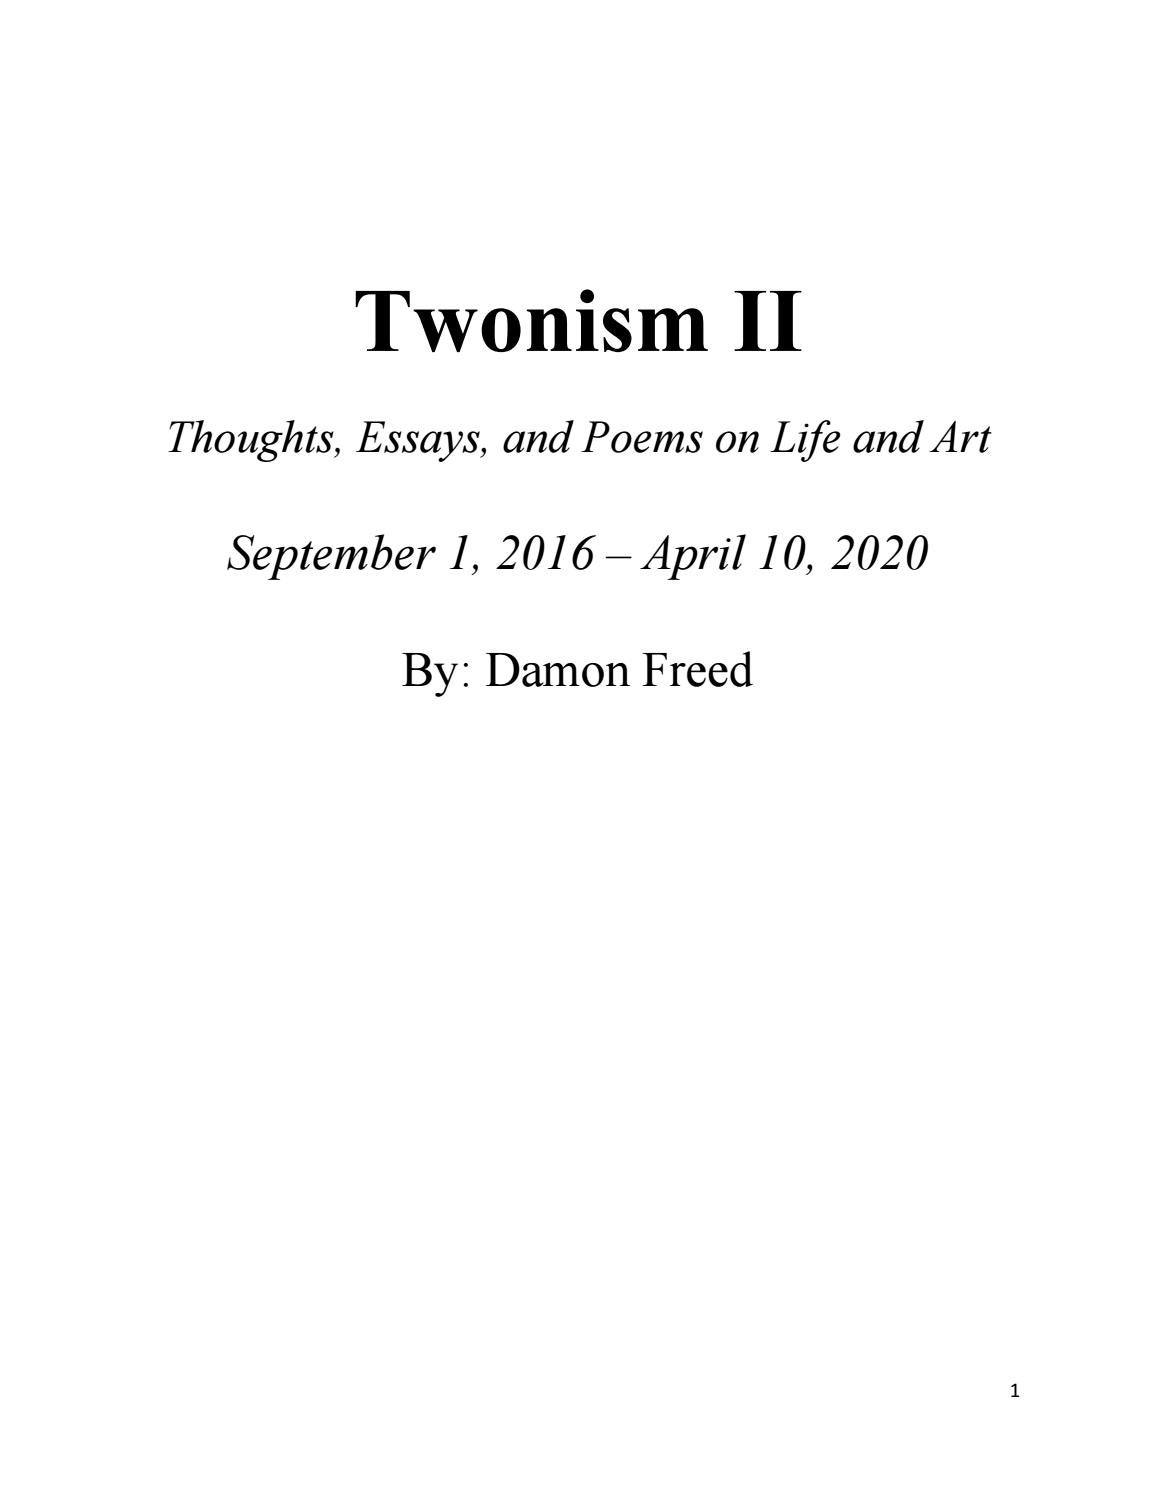 Twonism Ii Brief Thoughts Essays And Poems On Life And Art By Damon Freed By Damon Freed Issuu